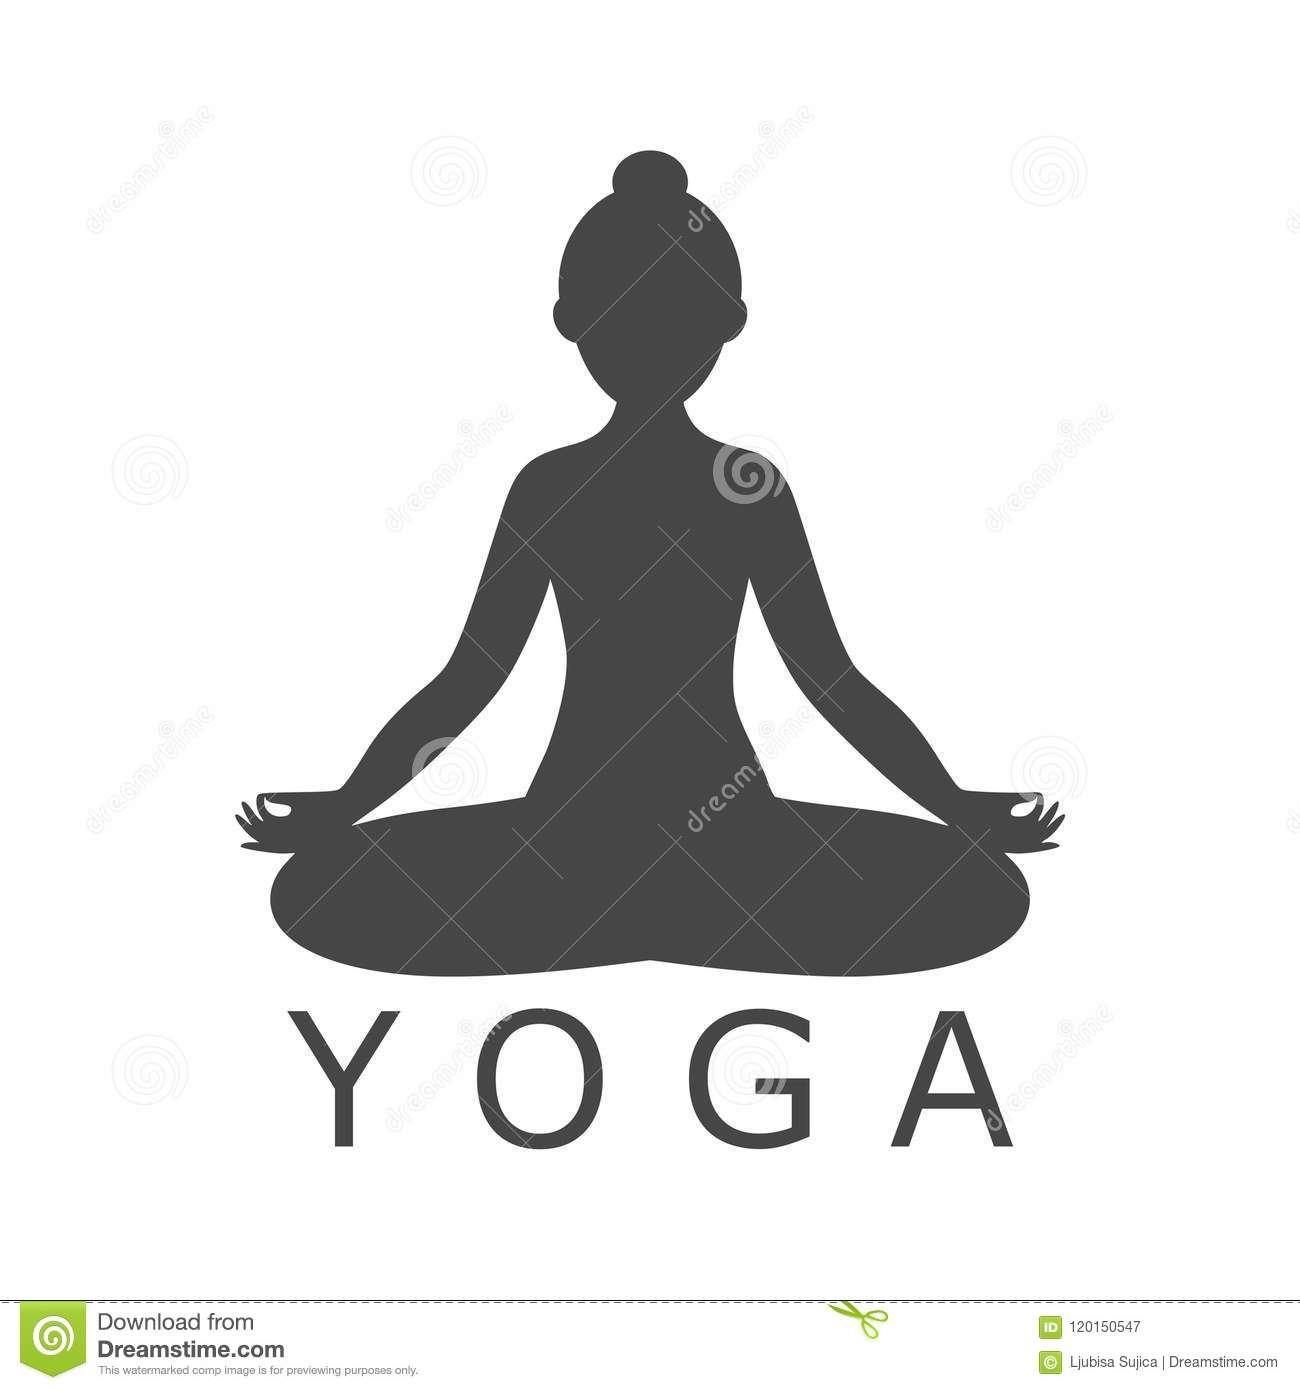 Yoga Meditation Zen Pose Logo Silhouette Symbol Icon Stock Vector